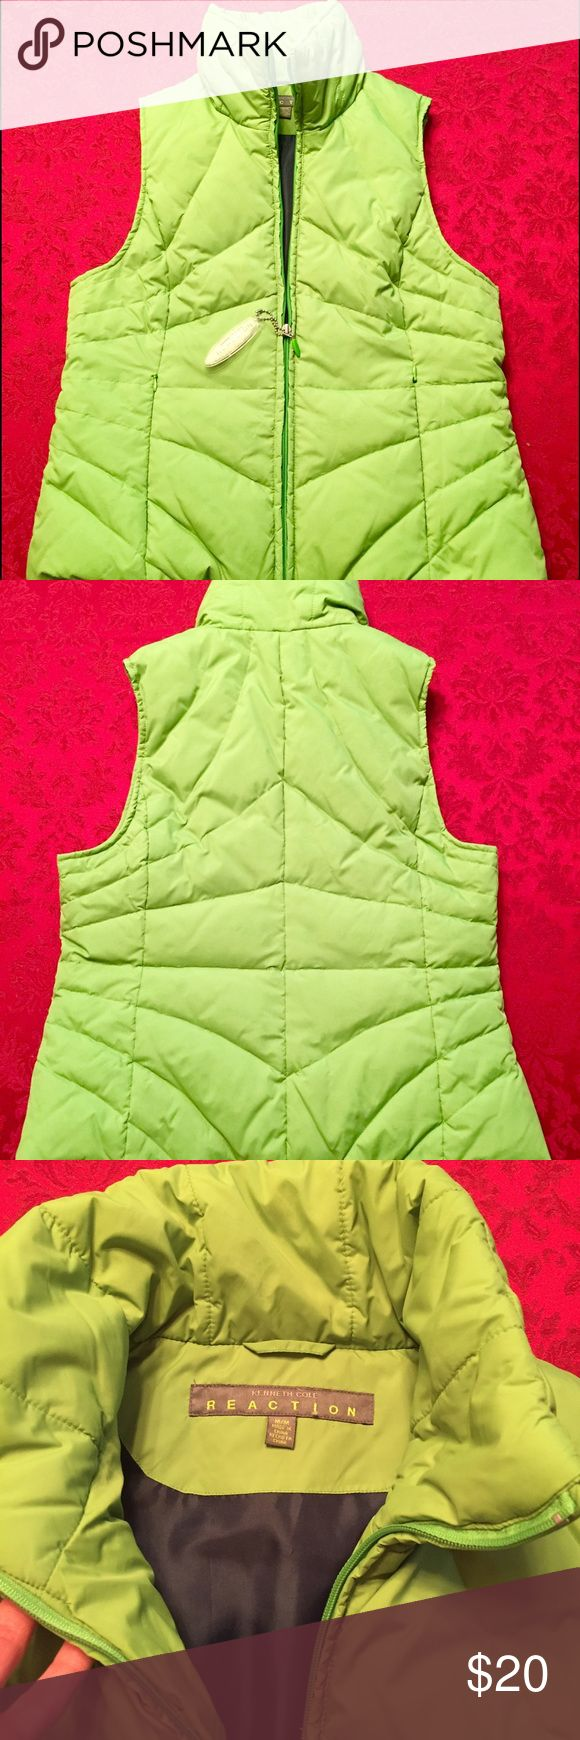 Kenneth Cole Reaction puffy vest Seahawks fans! Cute lime green puffy vest - blue fabric inside! So comfy. Kenneth Cole Reaction Jackets & Coats Vests